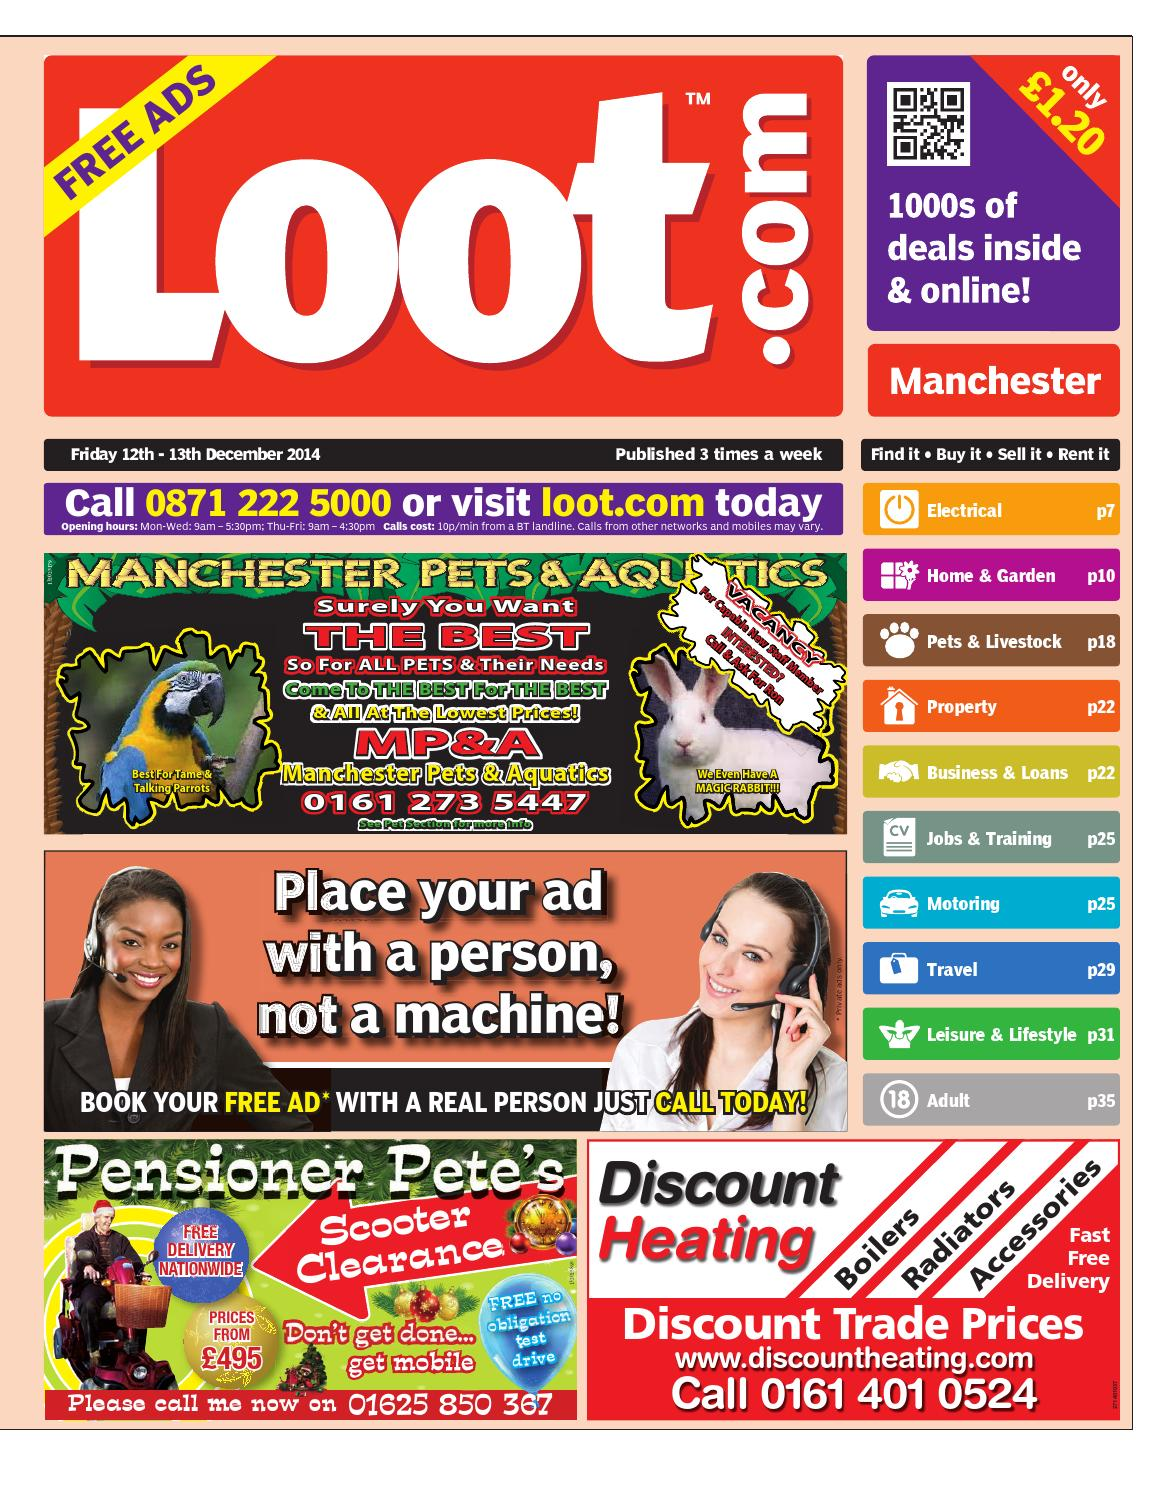 e60cad29030 Loot Manchester 12th December 2014 by Loot - issuu